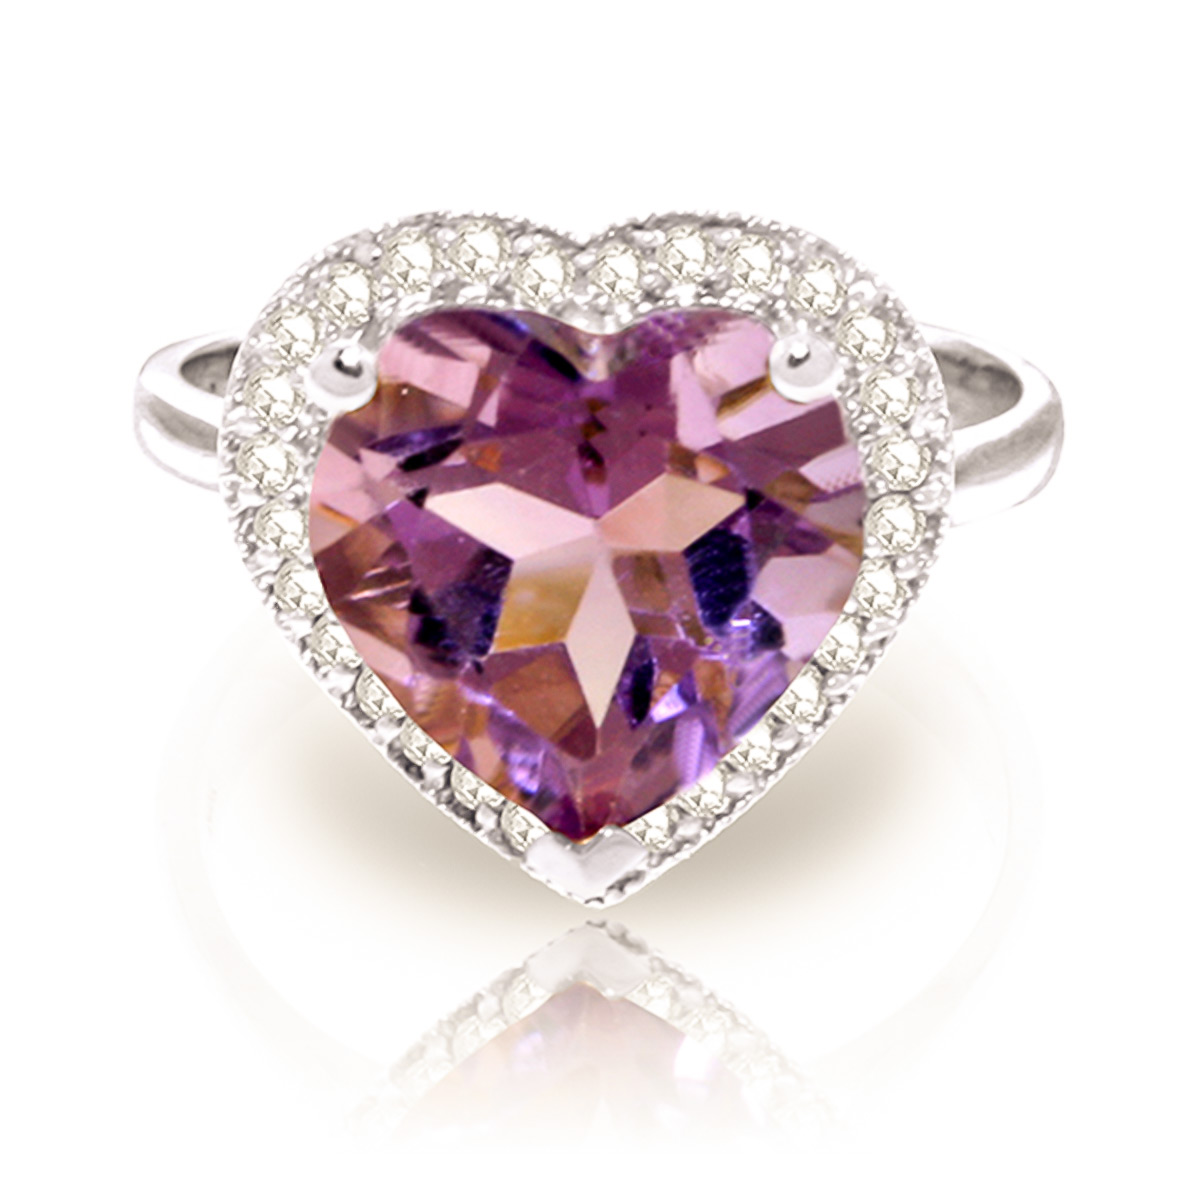 Amethyst and Diamond Halo Ring 3.1ct in 9ct White Gold